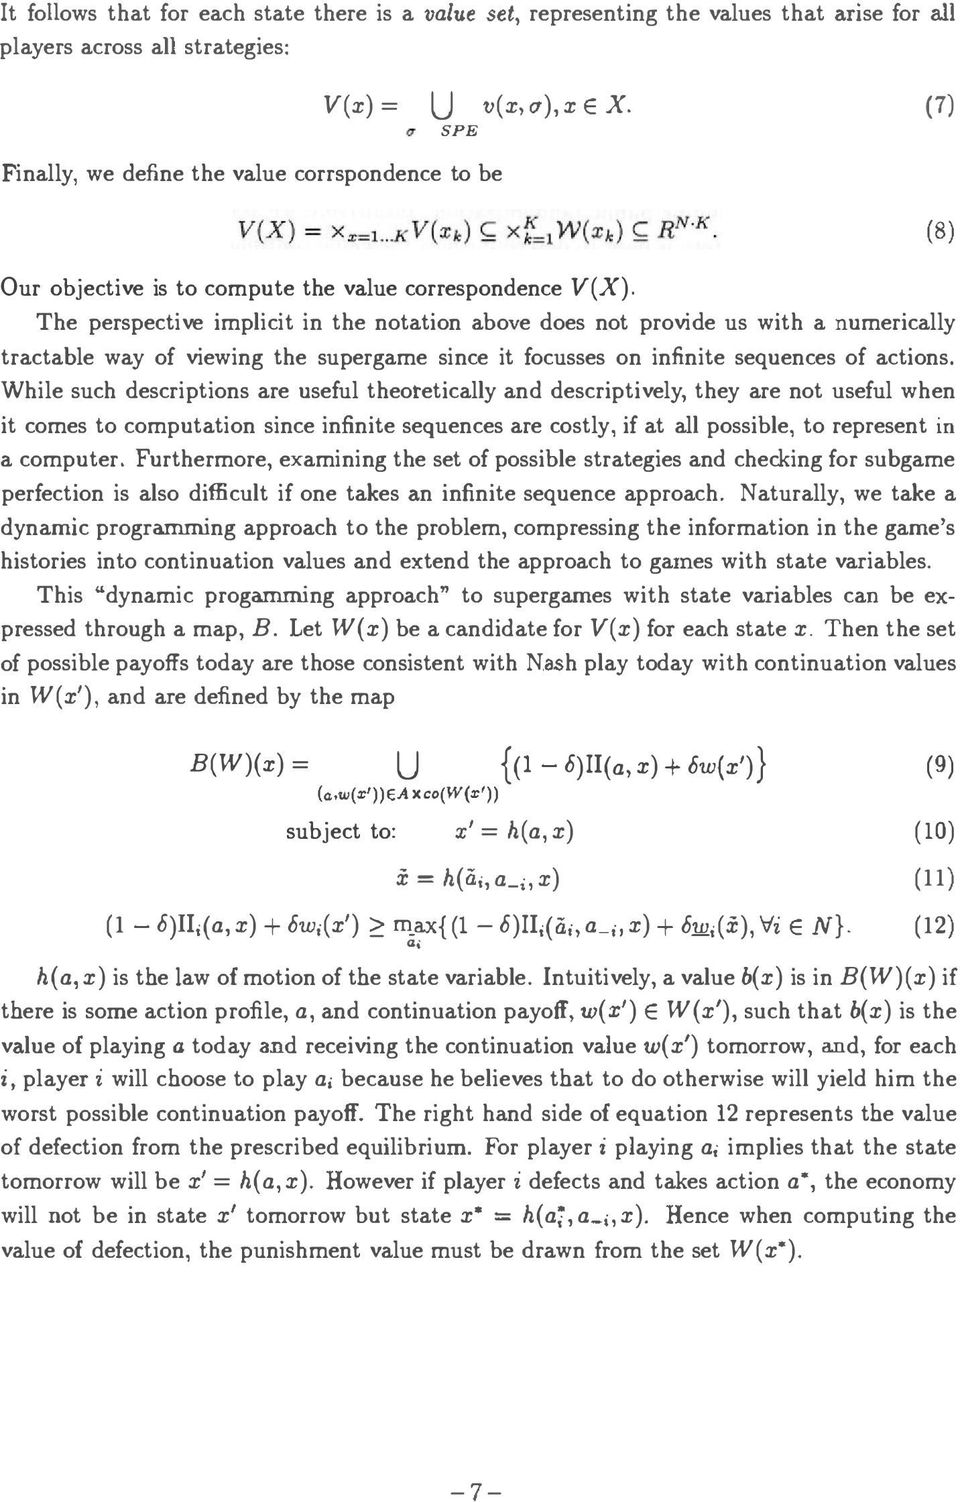 The perspective implicit in the notation aboye does not provide us with a numerically tractable way of viewing the supergame since it focusses on infinite sequences of actions.